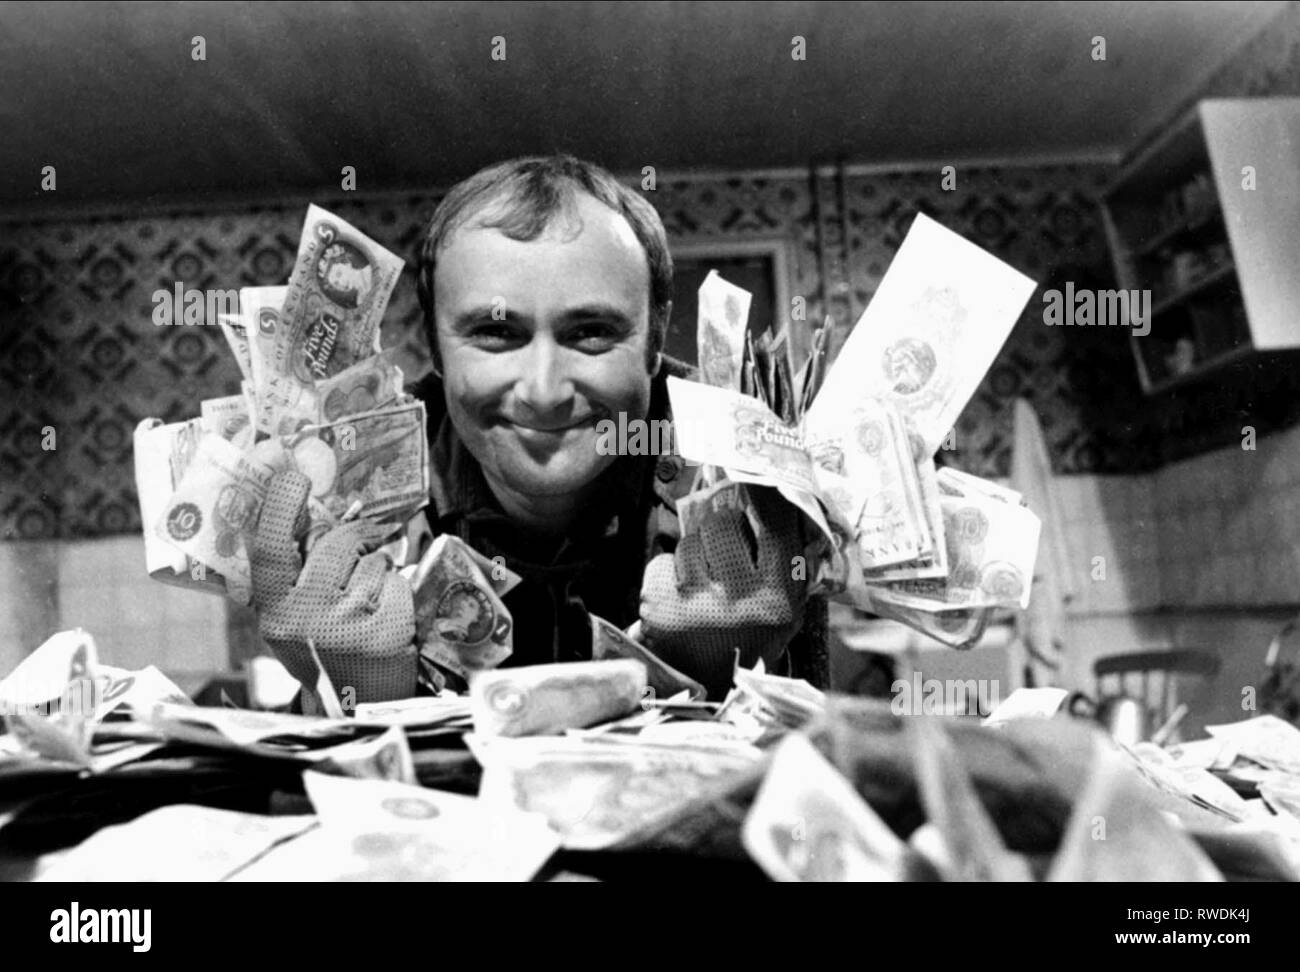 PHIL COLLINS, BUSTER, 1988 - Stock Image